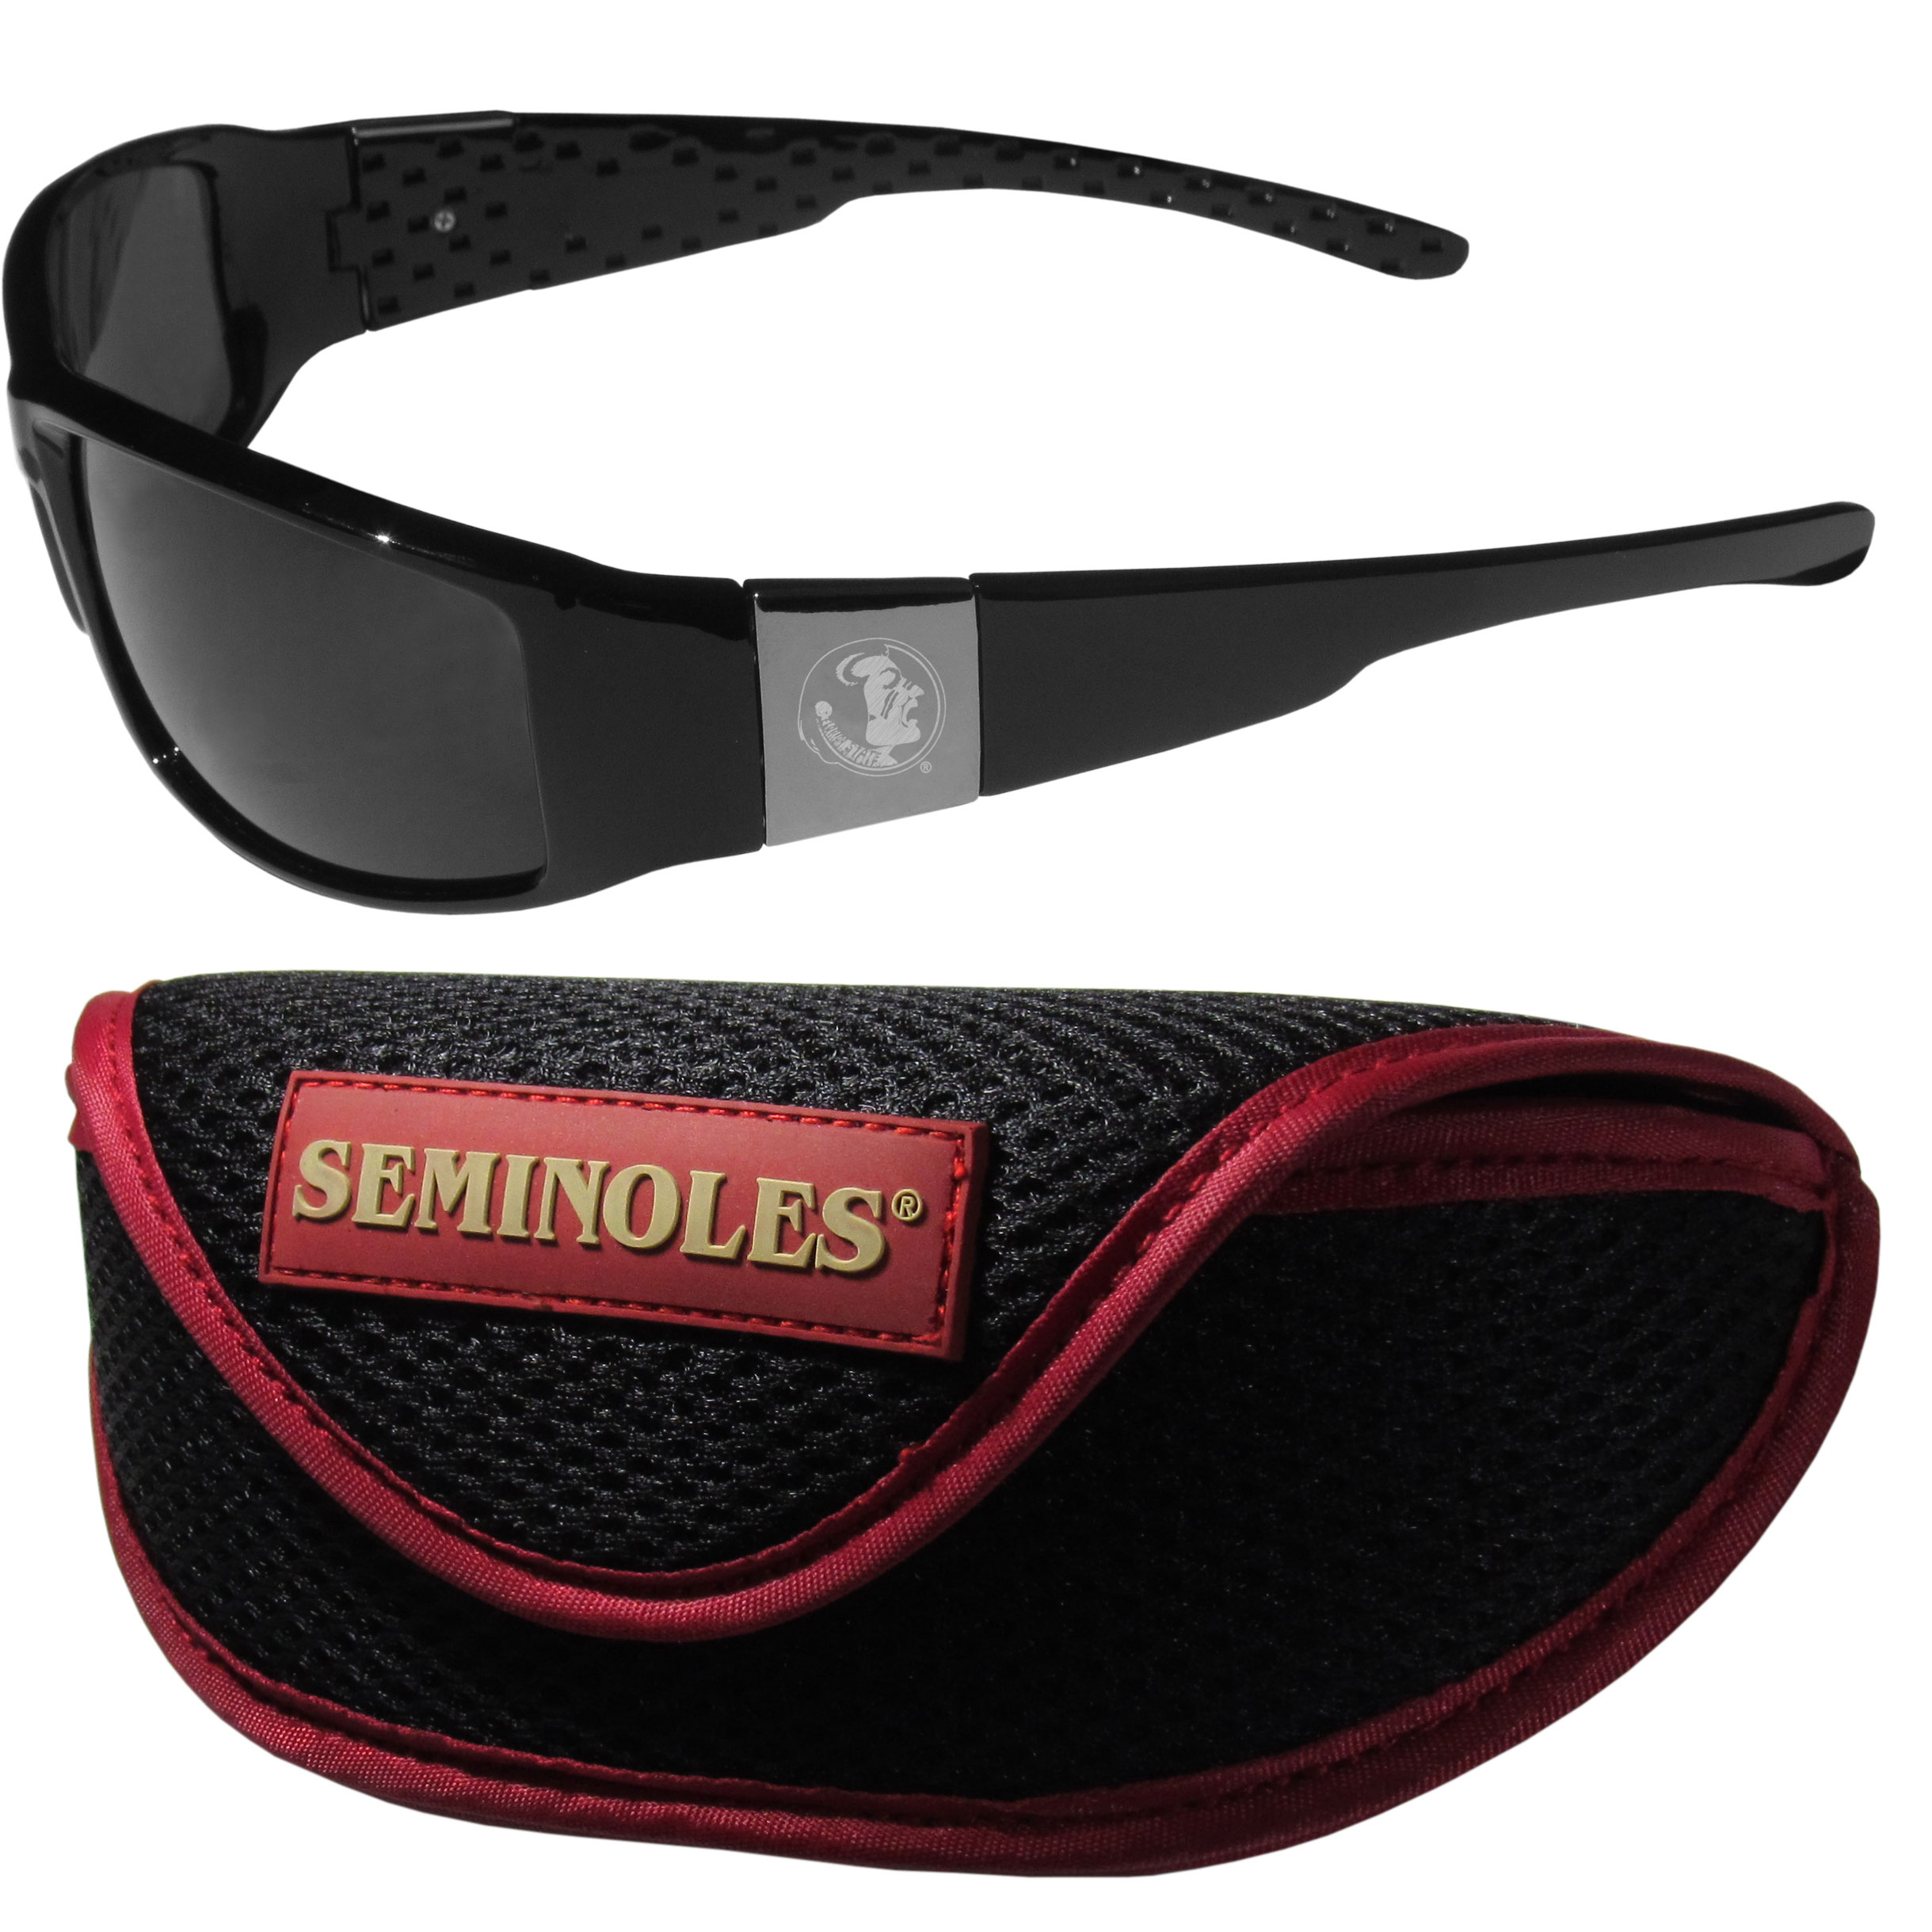 Florida St. Seminoles Chrome Wrap Sunglasses and Sport Carrying Case - These designer inspired frames have a sleek look in all black with high-polish chrome Florida St. Seminoles shields on each arm with an etched logo. The shades are perfect any outdoor activity like; golfing, driving, hiking, fishing or cheering on the team at a tailgating event or an at home game day BBQ with a lens rating of 100% UVA/UVB for maximum UV protection. The high-quality frames are as durable as they are fashionable and with their classic look they are perfect fan accessory that can be worn everyday for every occasion. The shades come with a zippered hard shell case to keep your sunglasses safe.